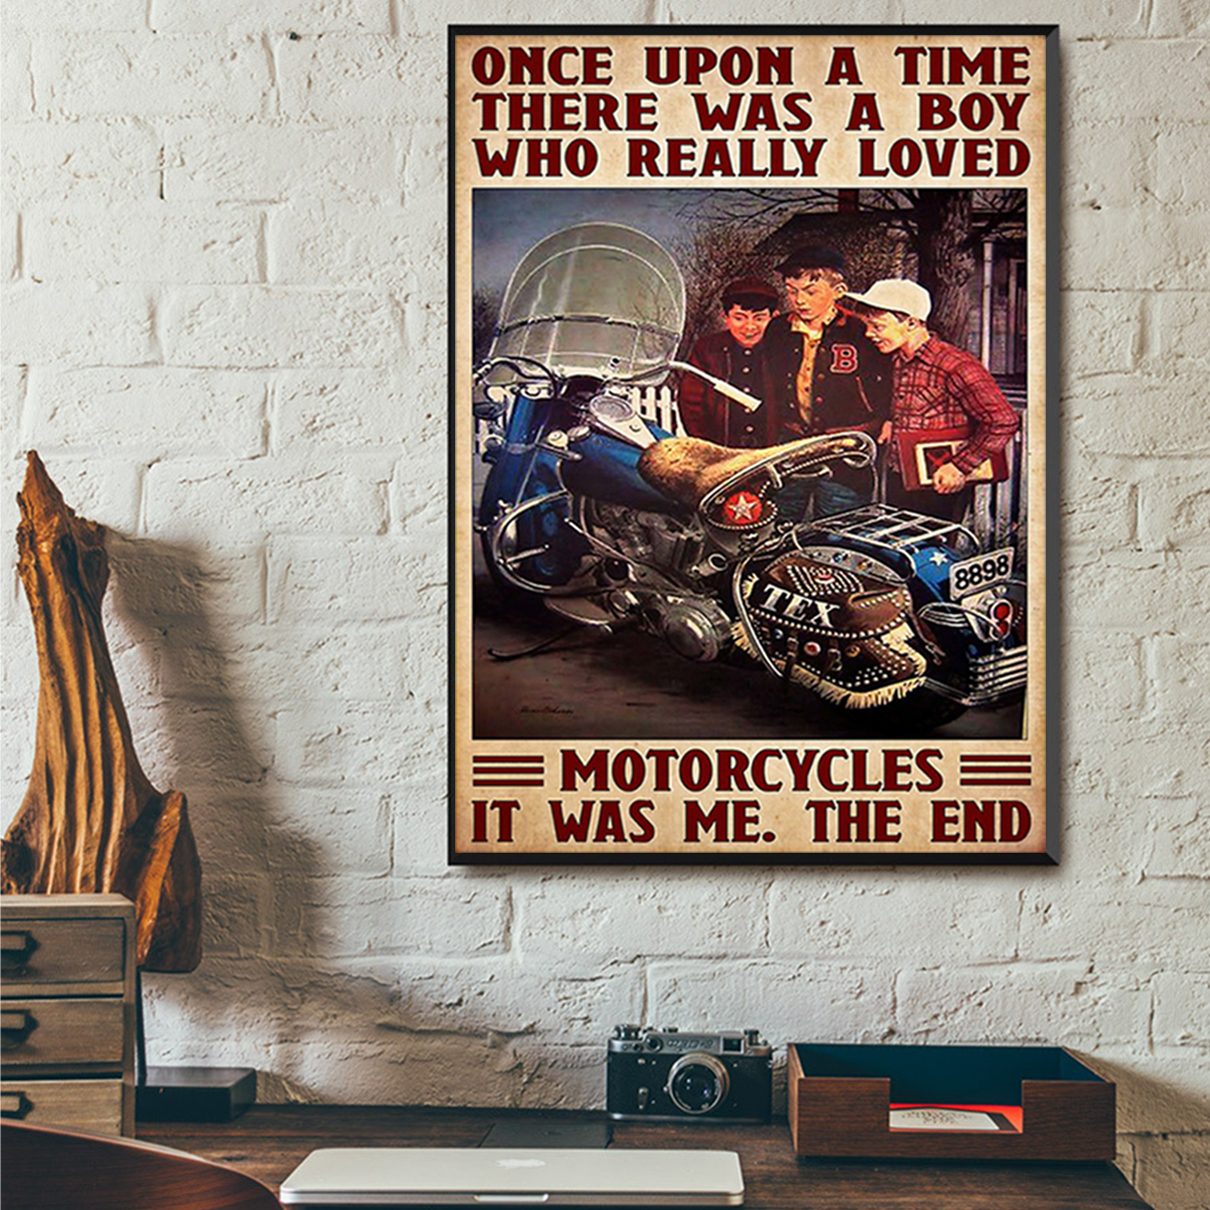 Once upon a time there was a boy who really loved motorcycles poster A3